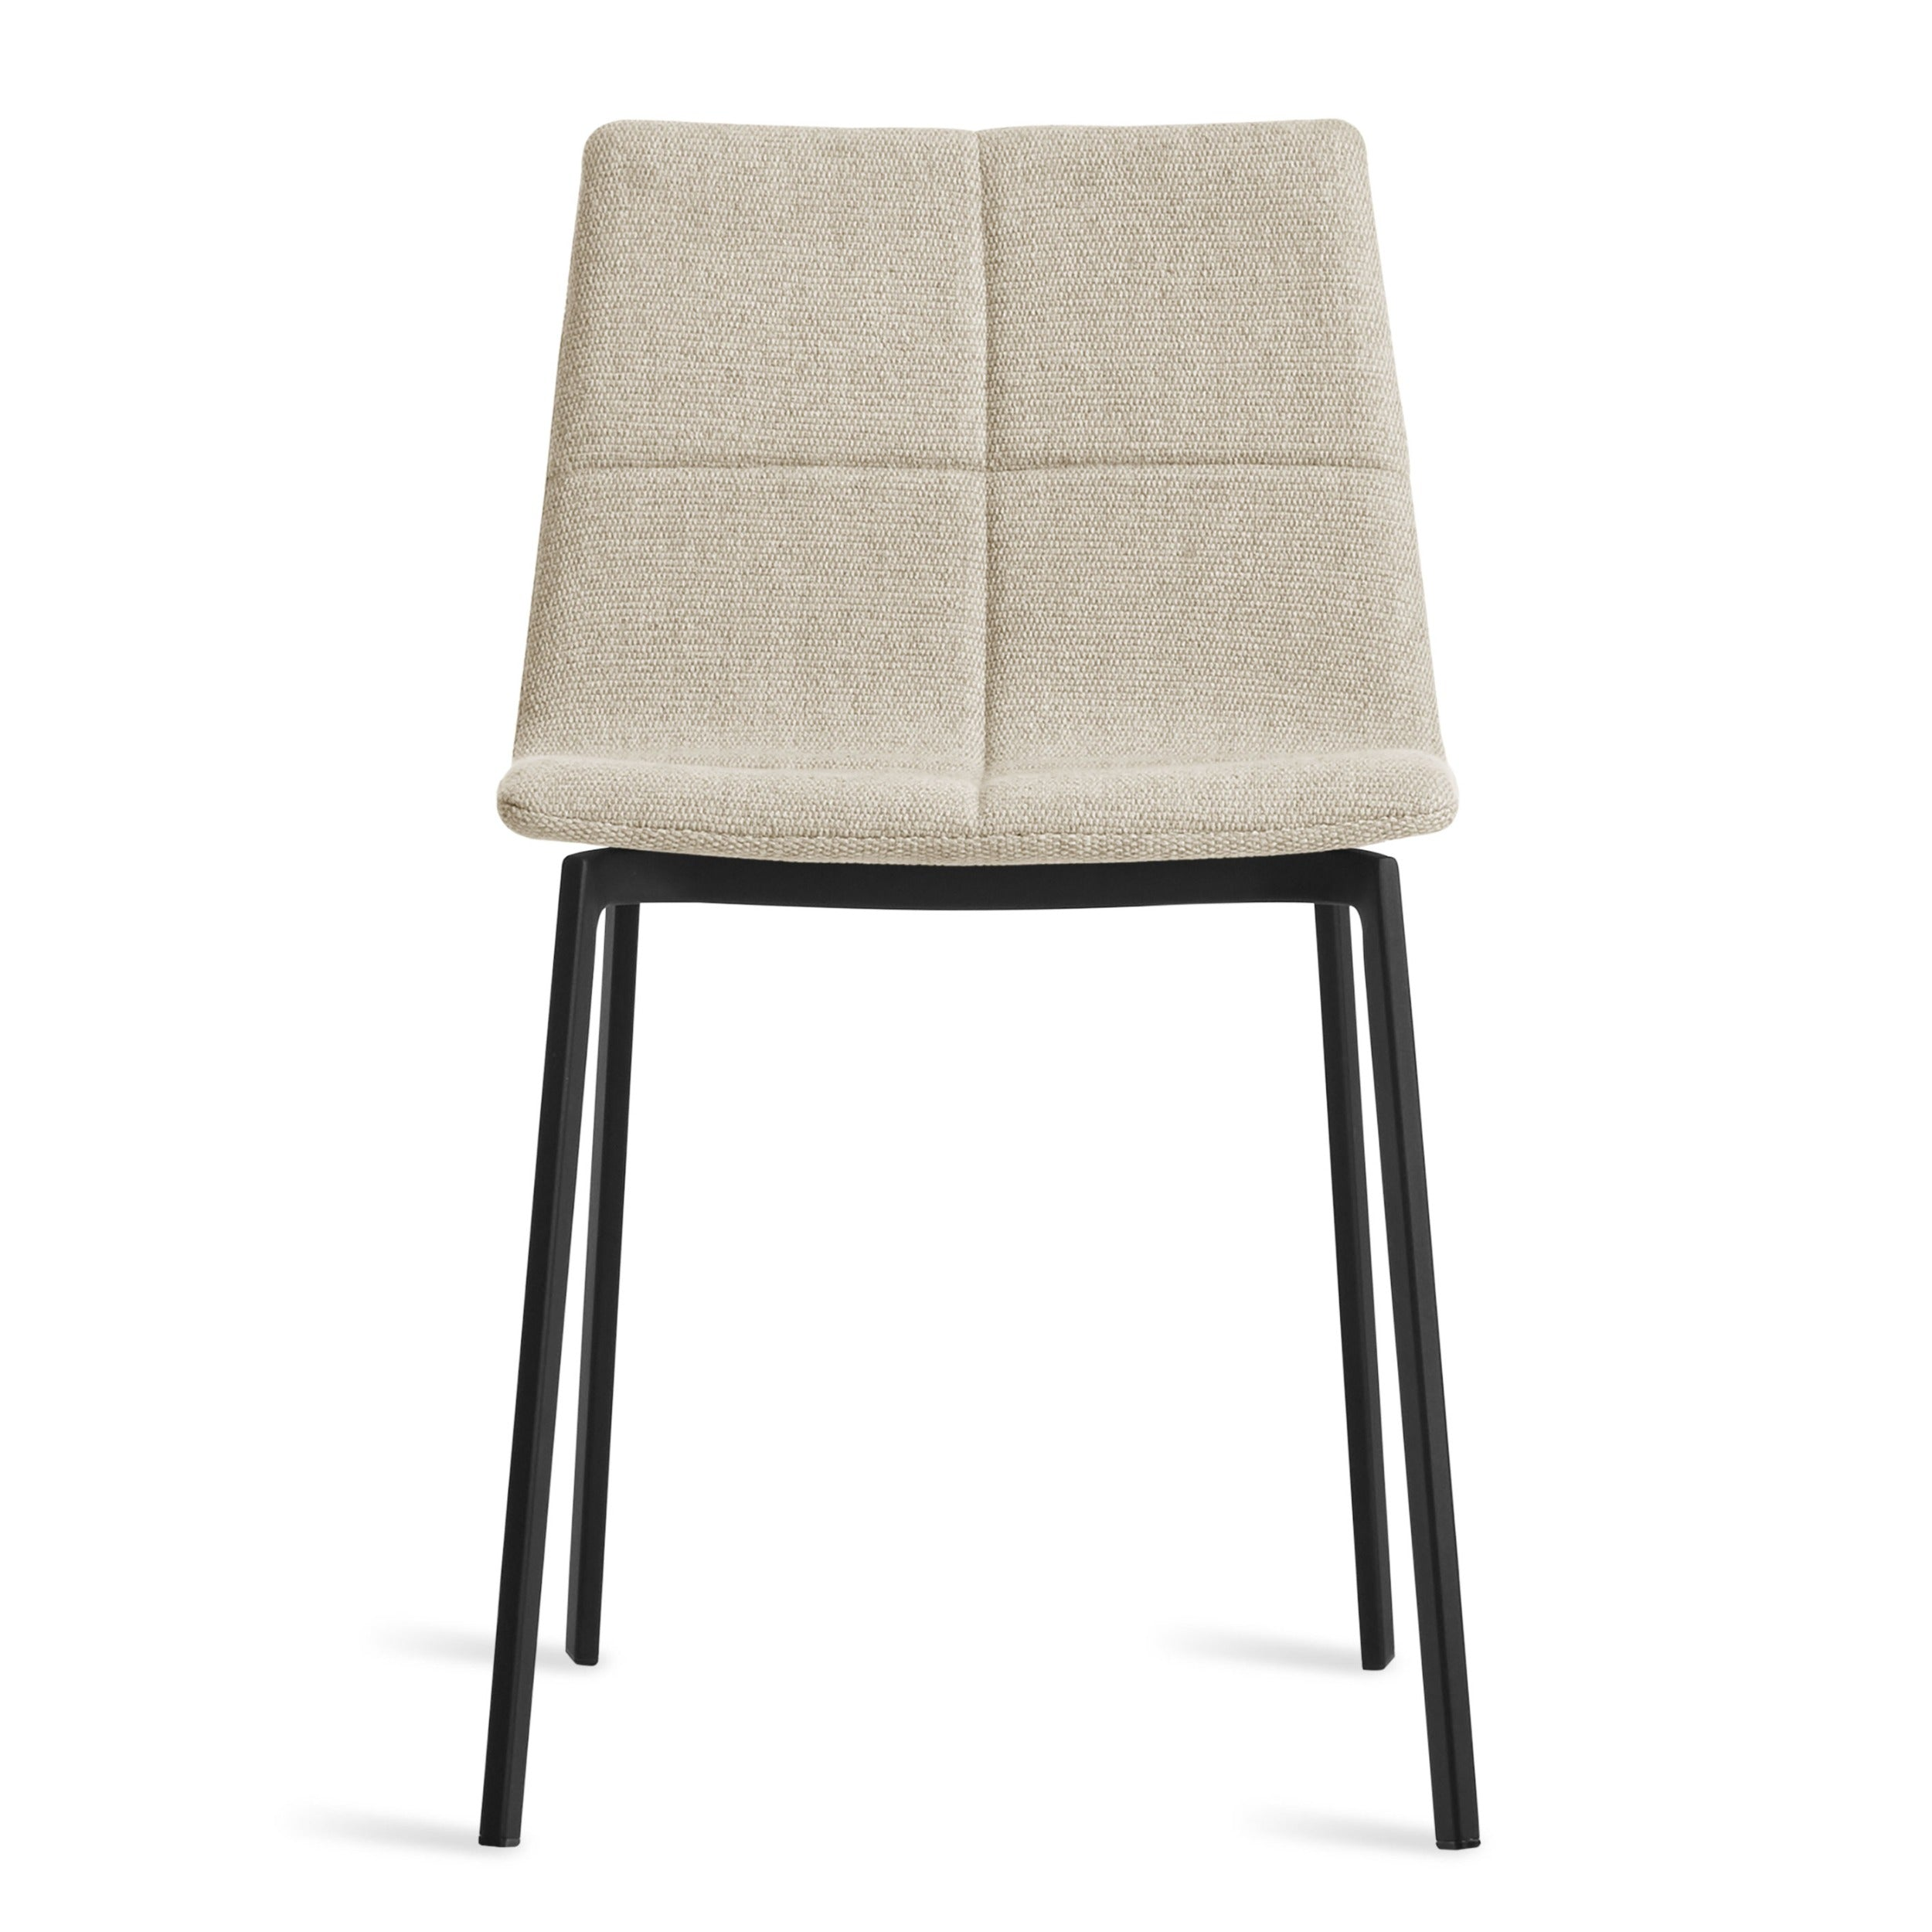 Between Us Dining Chair